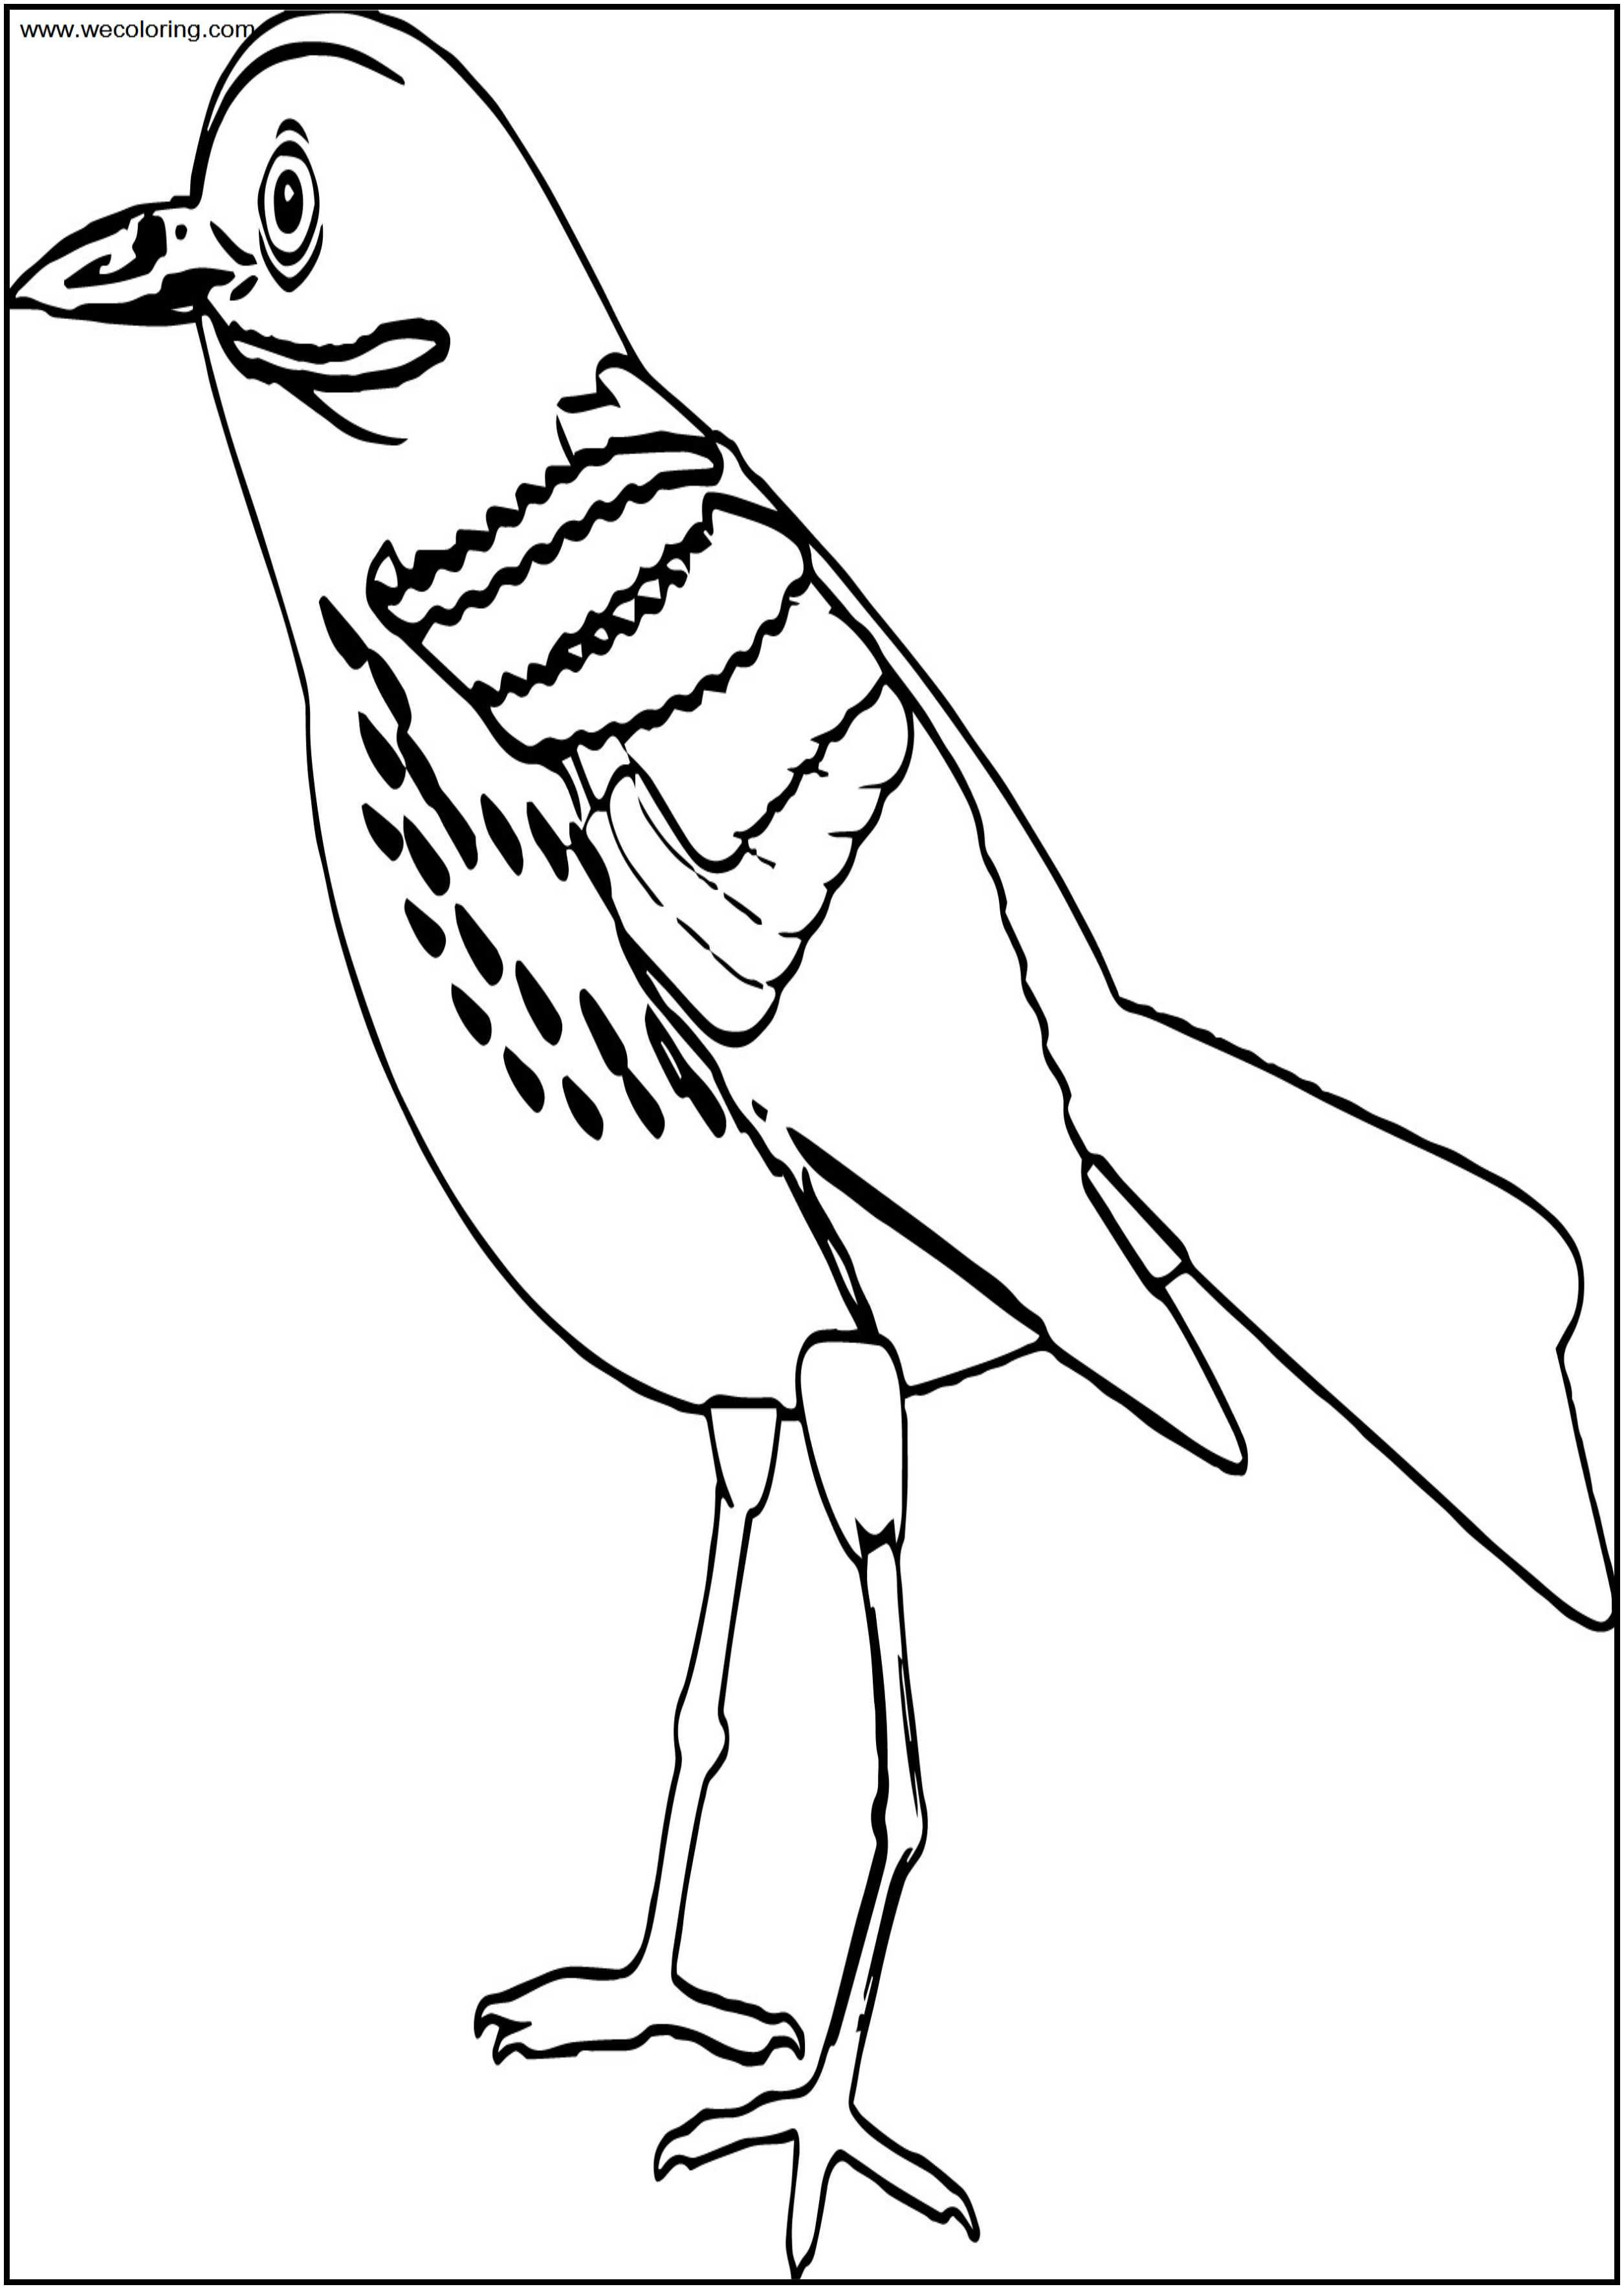 By Bird Free A4 Printable Coloring Page